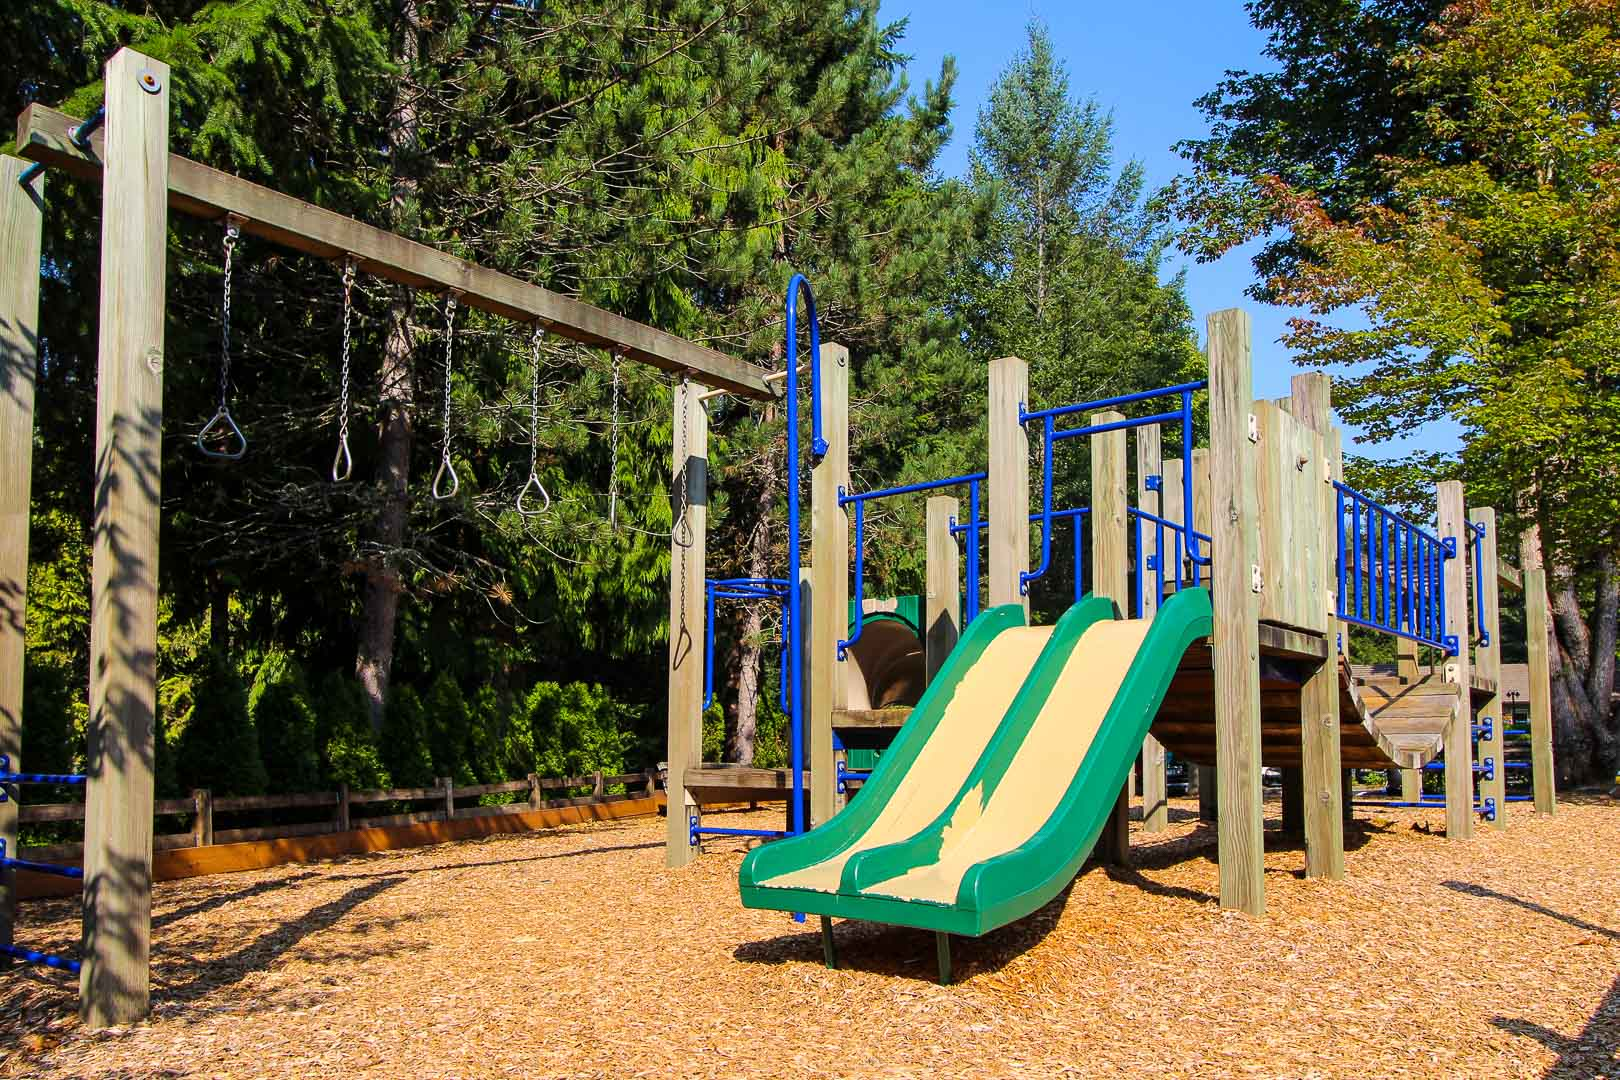 A spacious outdoor playground at VRI's Whispering Woods Resort in Oregon.